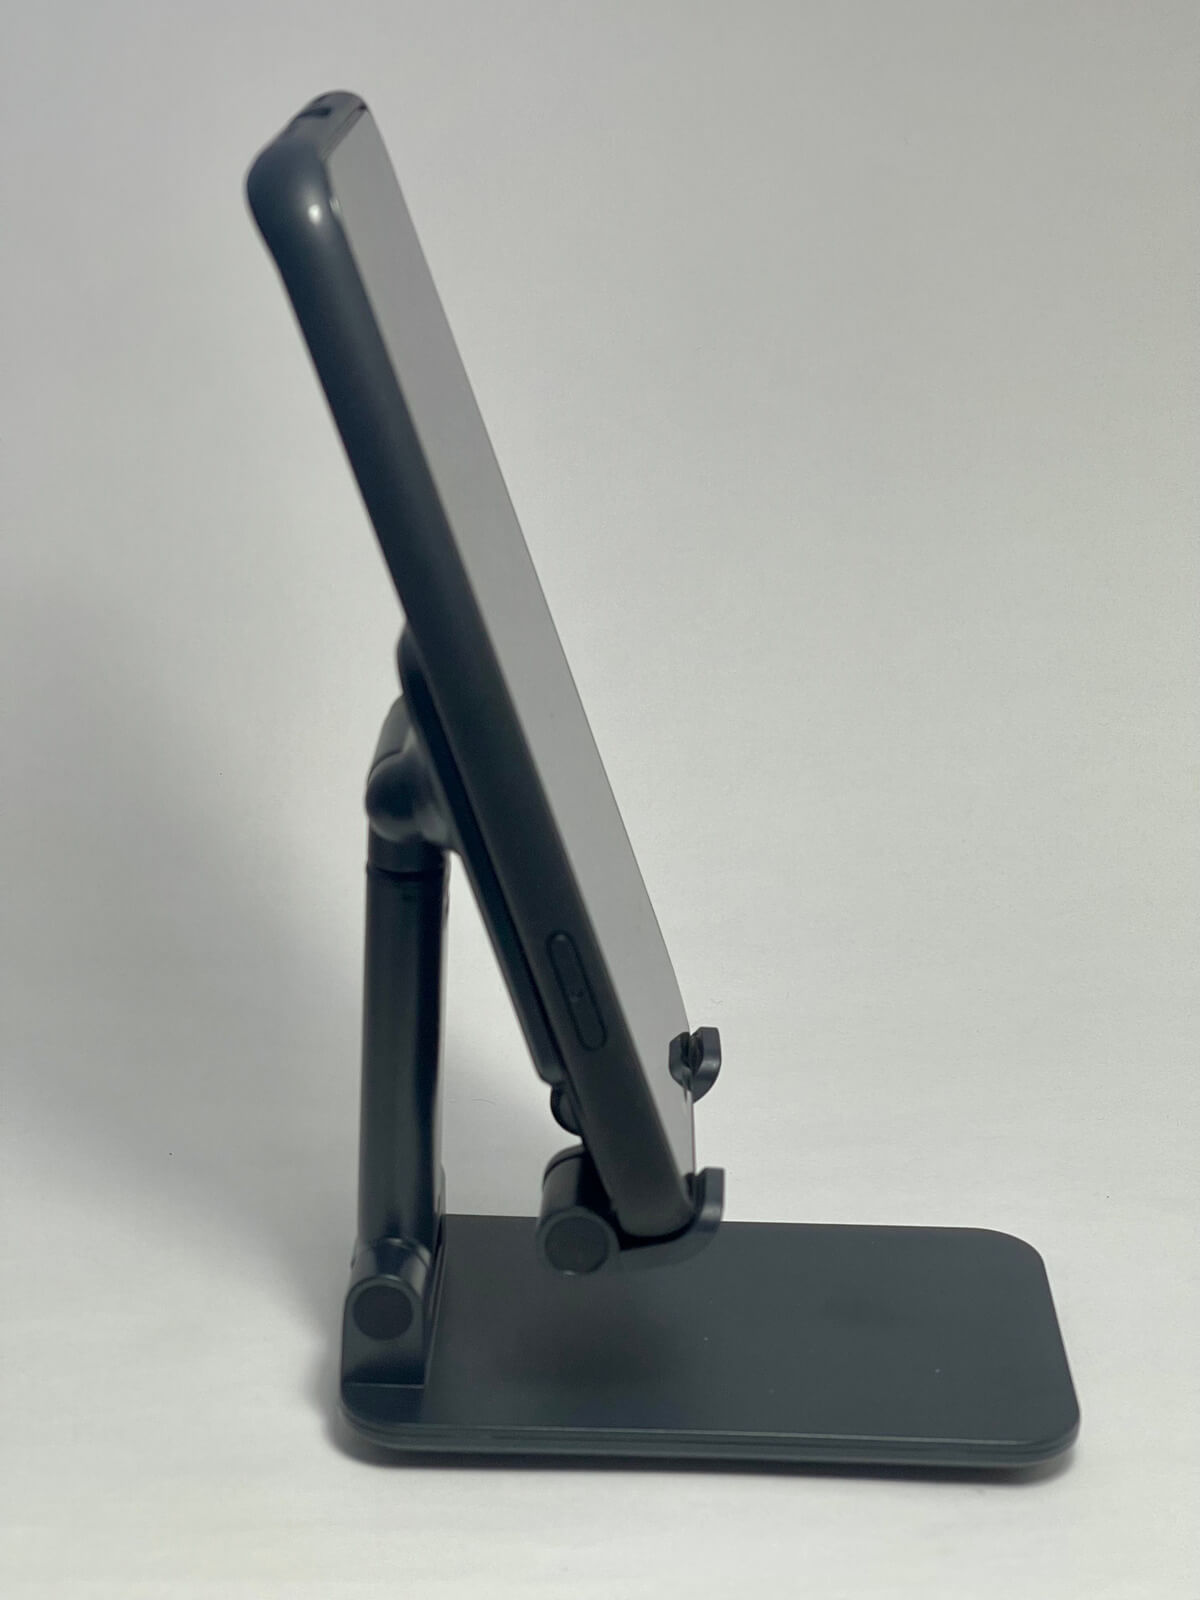 iphone12-stand-01-photo-011